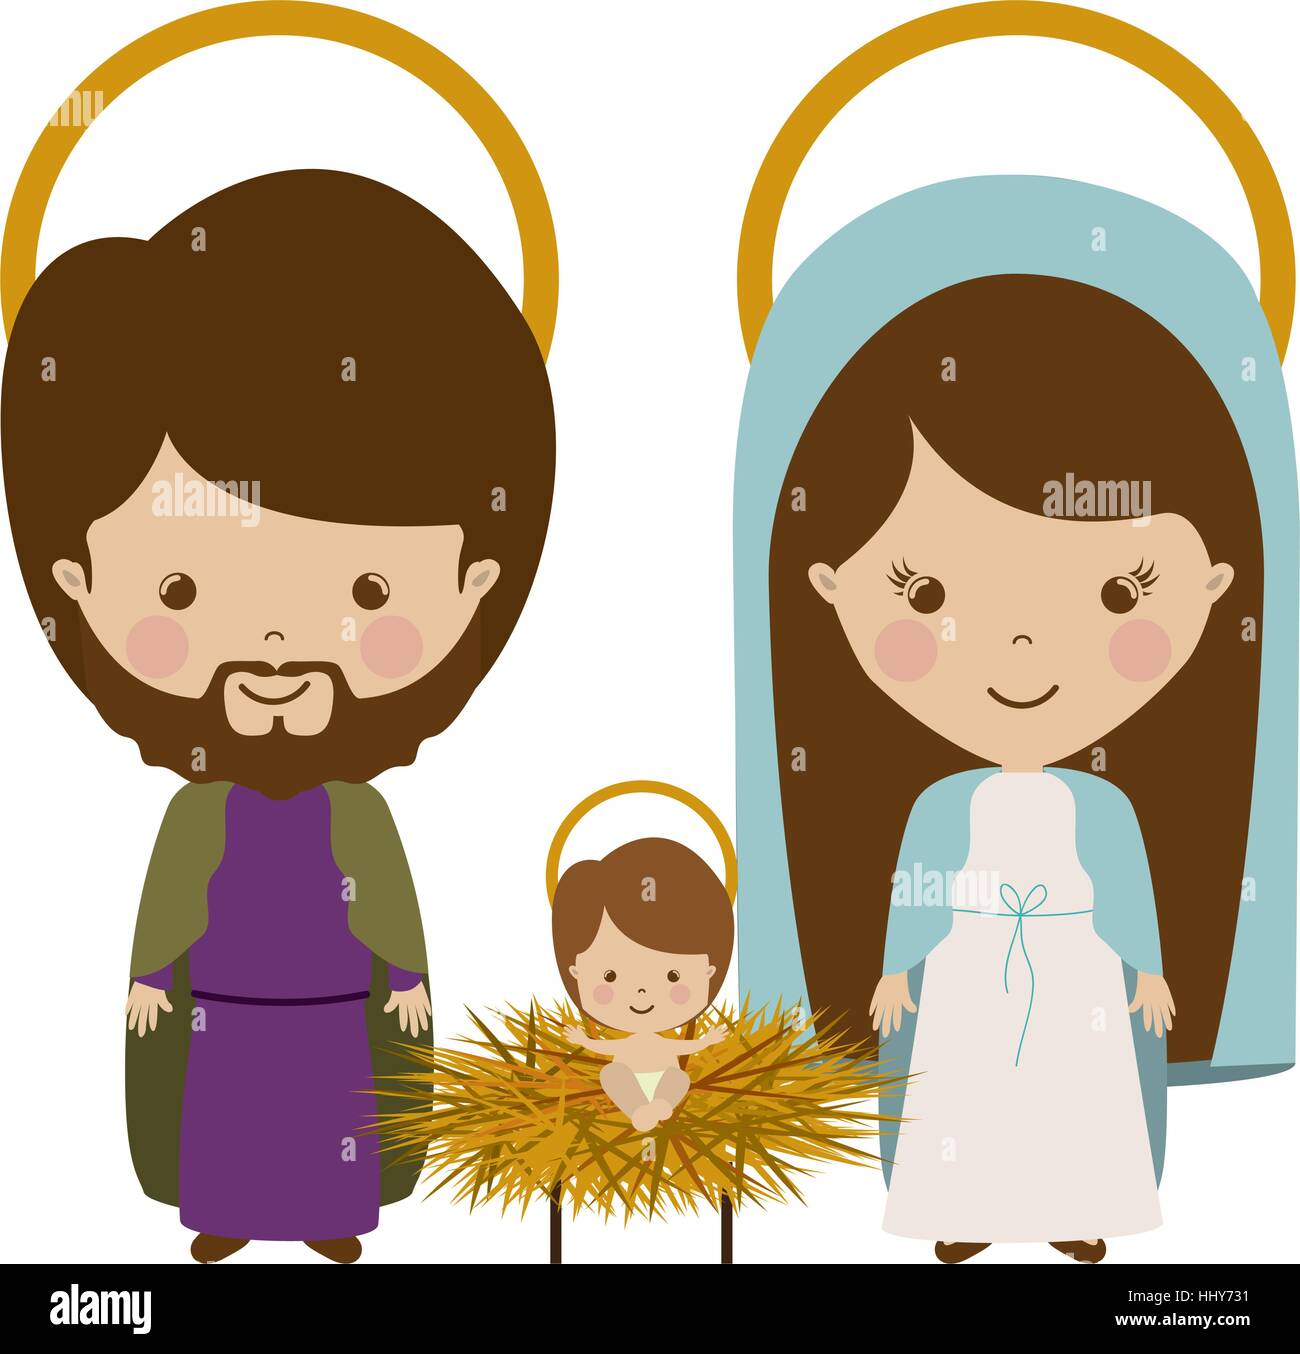 Mary with infant jesus pictures The insults of Jews to Jesus, Mary and Gentiles